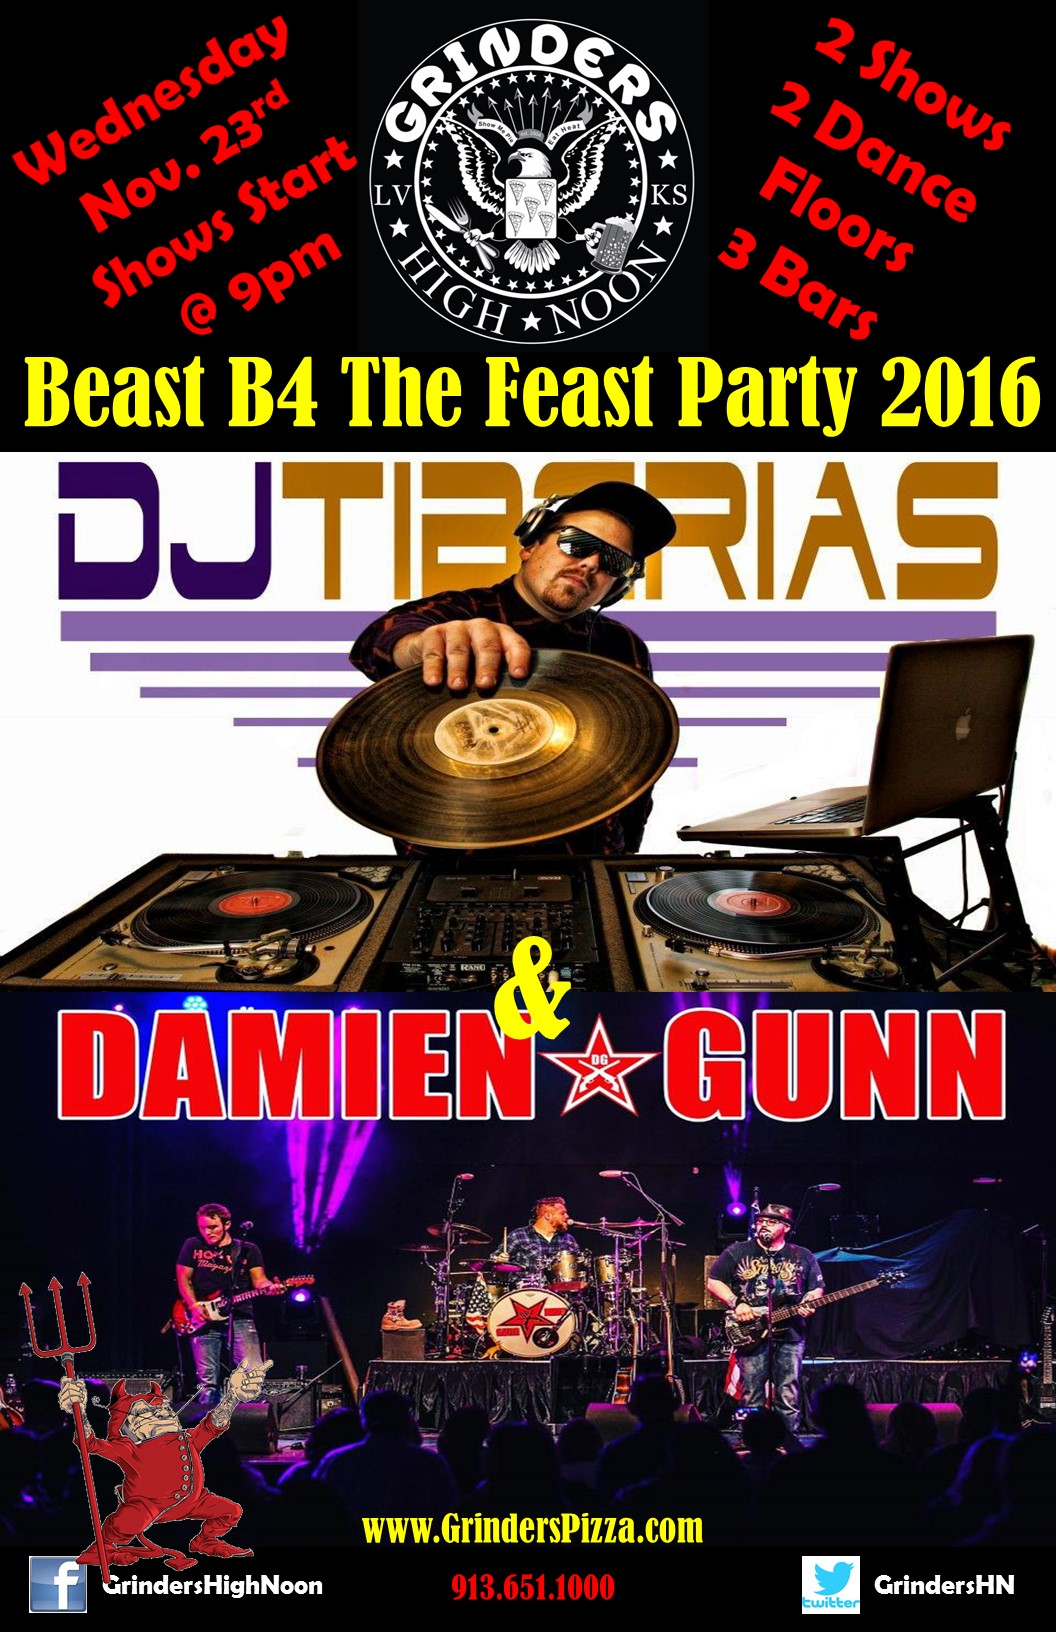 Beast B4 The Feast Party 2016